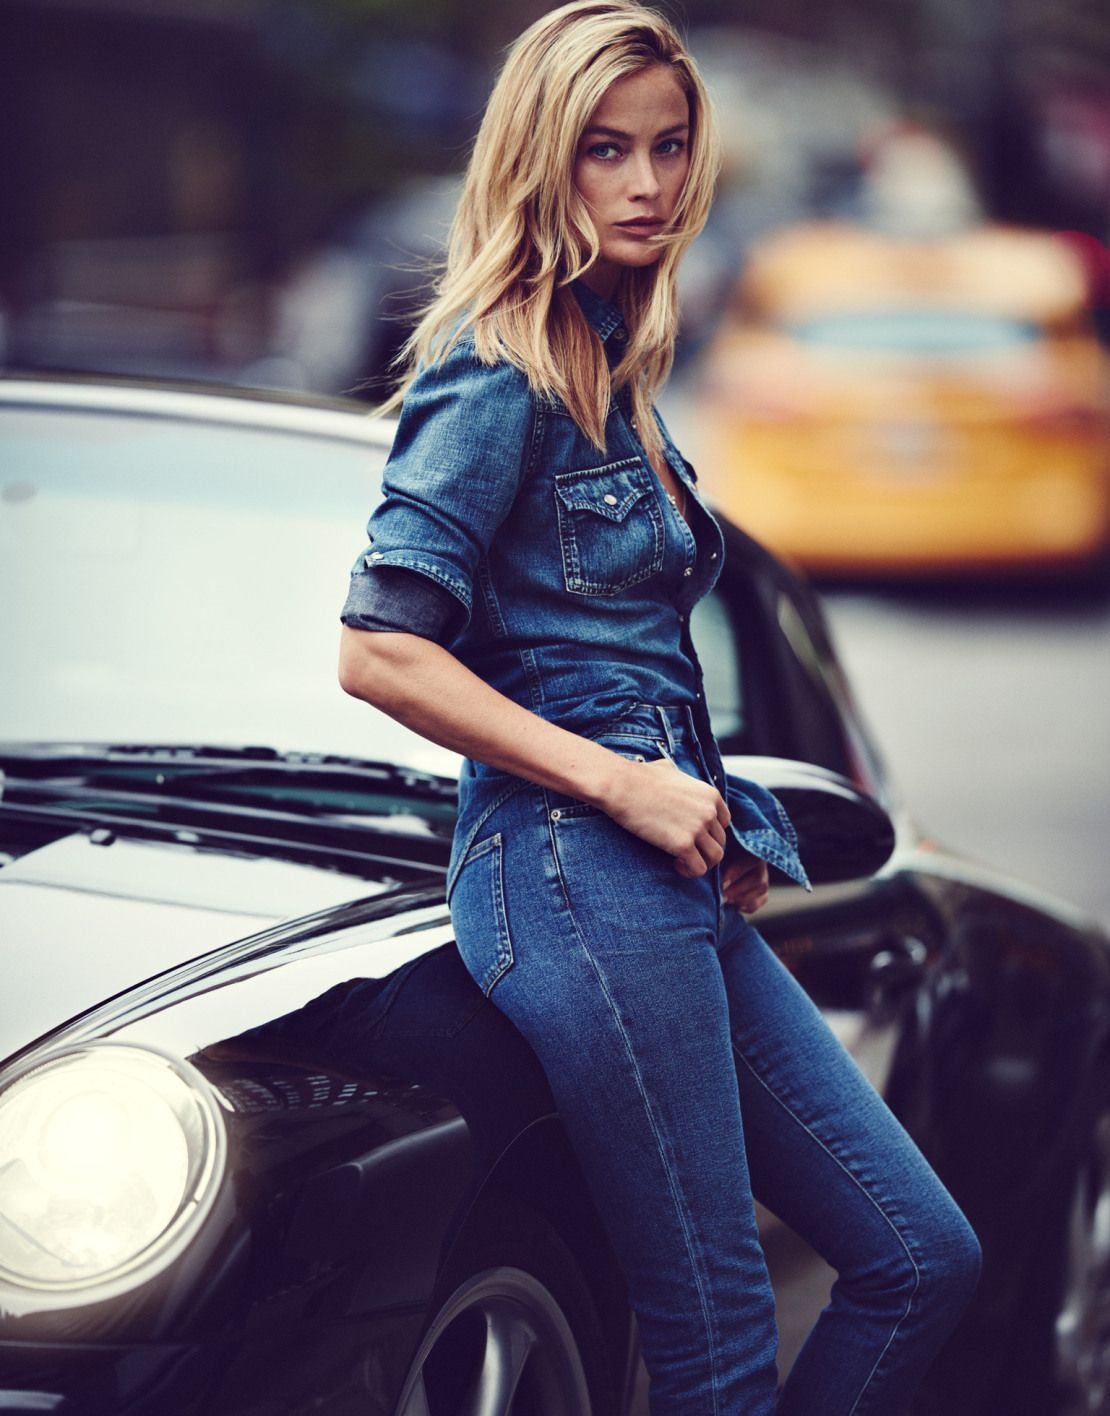 993 C2S shown by Carolyn Murphy - photo by Emma Tempest